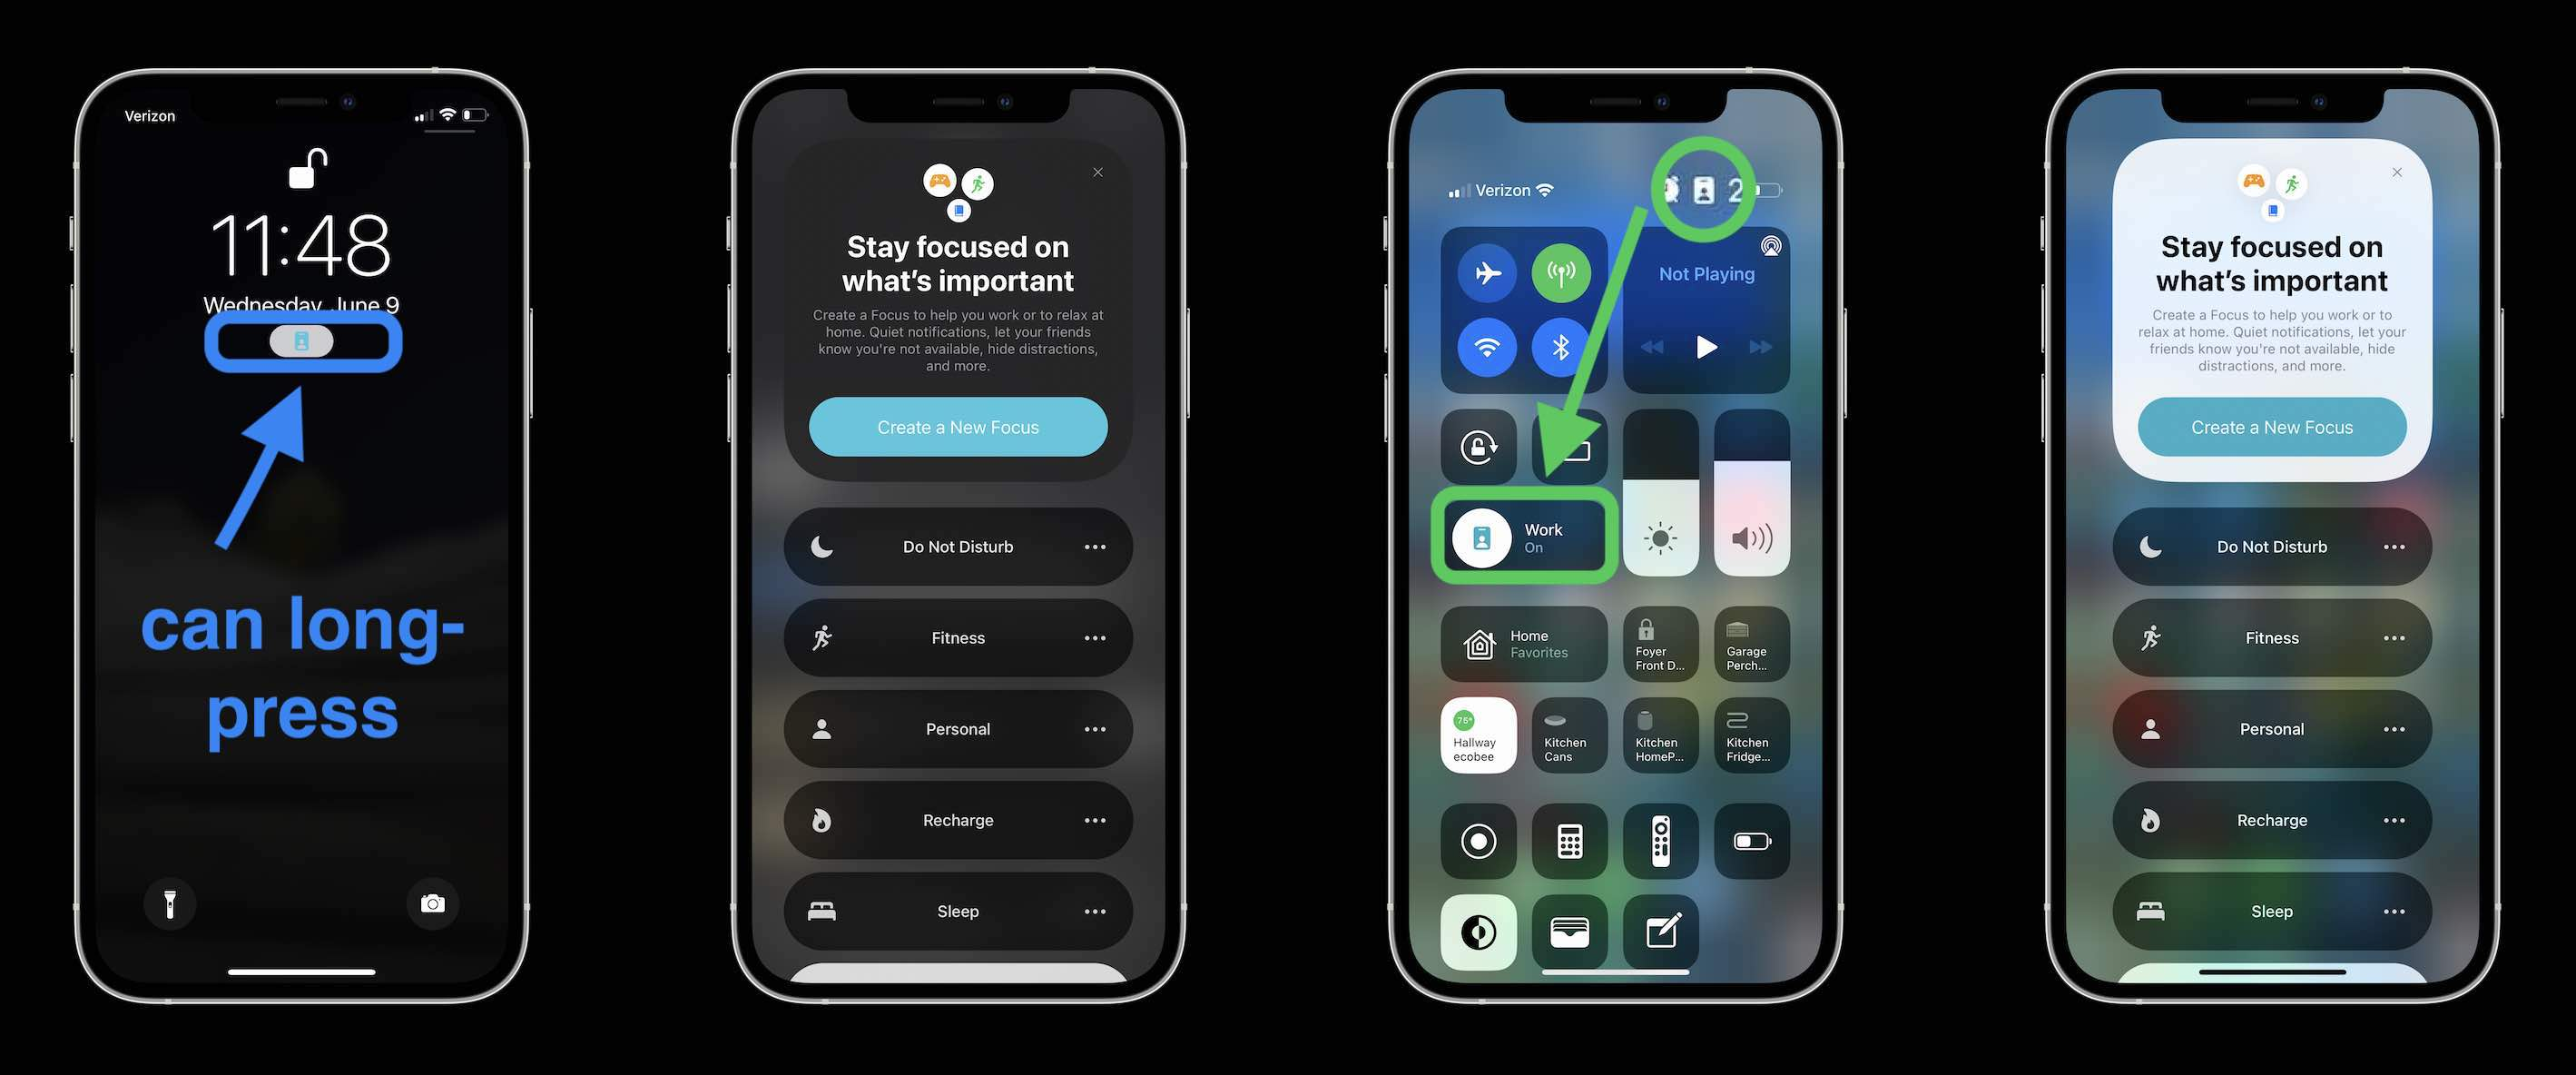 How to use iPhone Focus in iOS 15 - where to see what's enabled